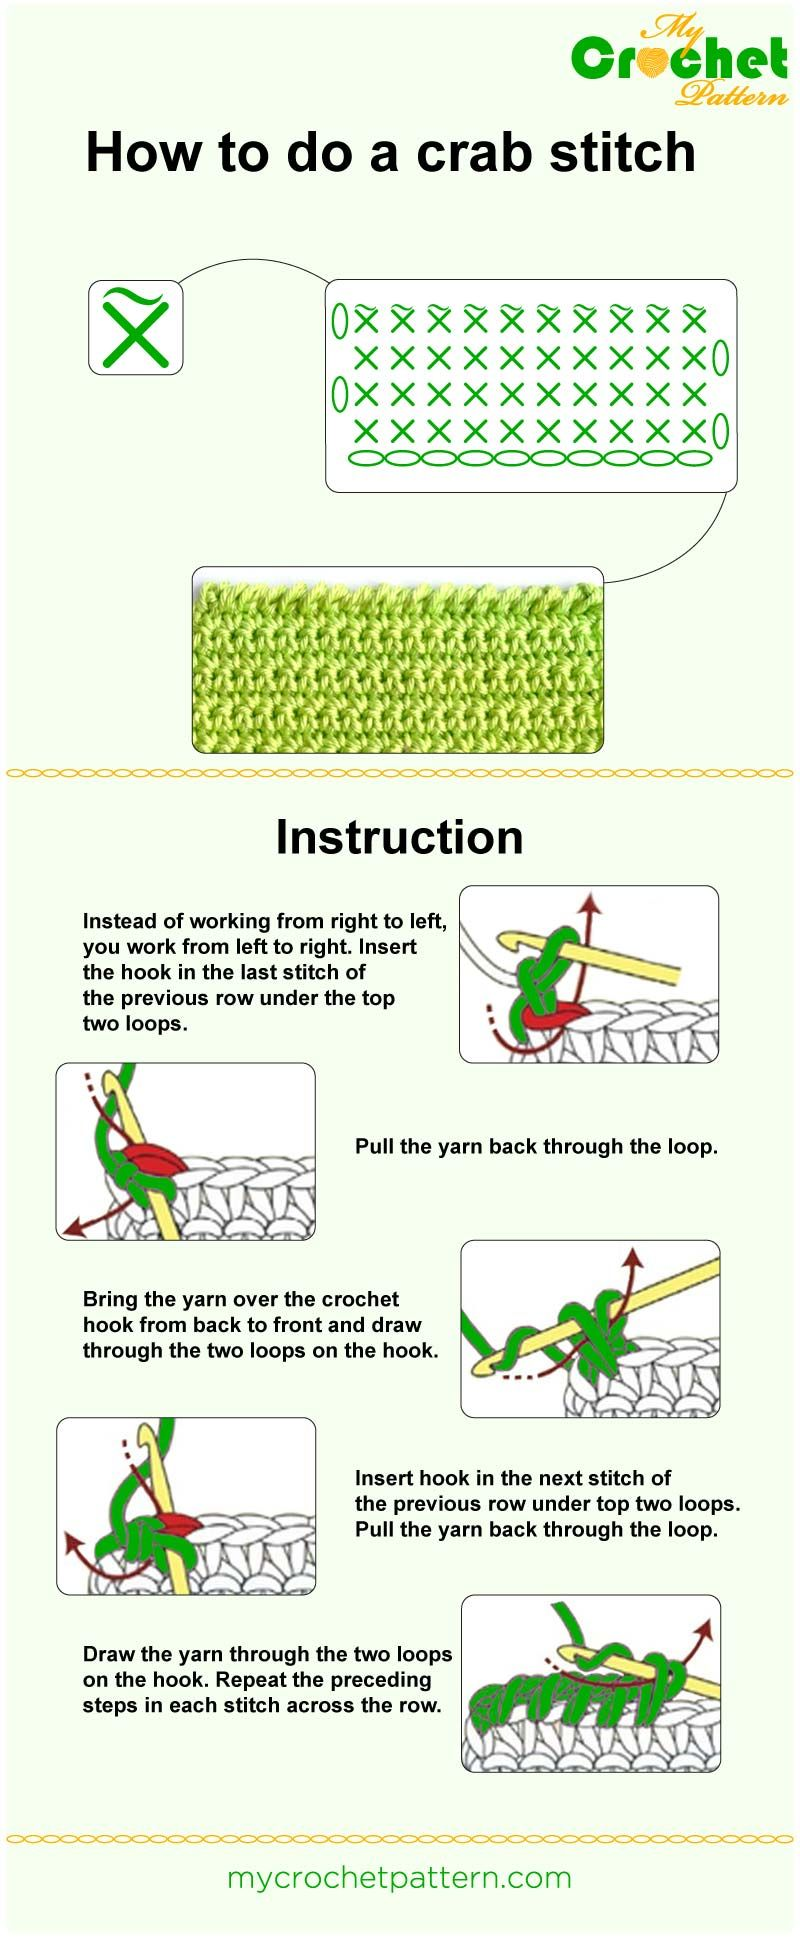 How To Do A Crab Stitch Infographic 31 Basic Crochet Stitches